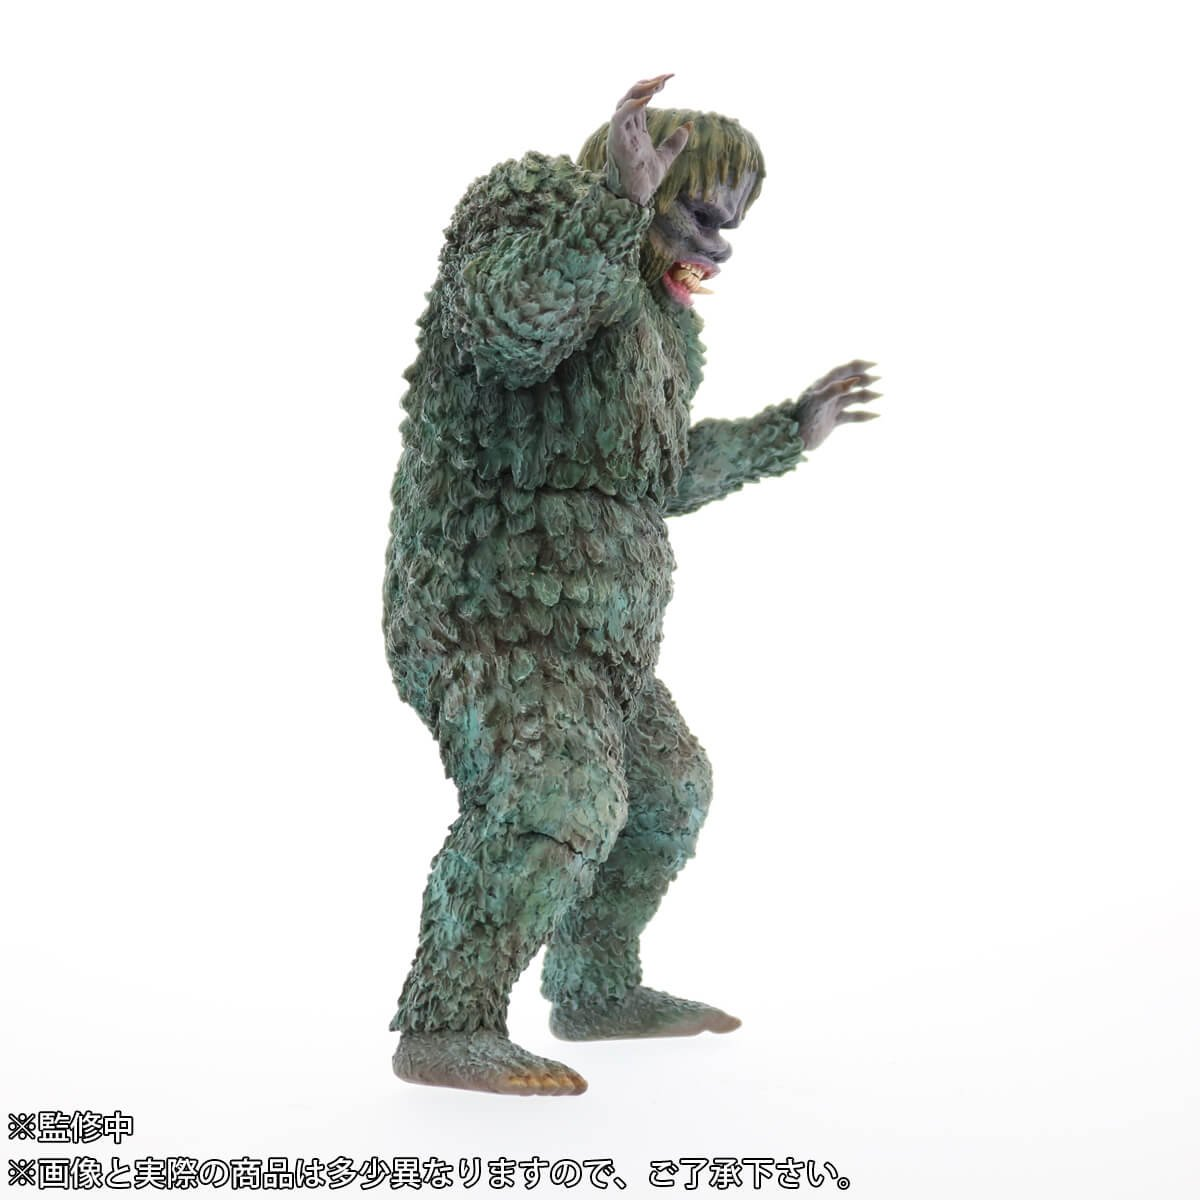 Toho Large Monster Series Sanda vs. Guyra Shonen Rick Limited Edition 13